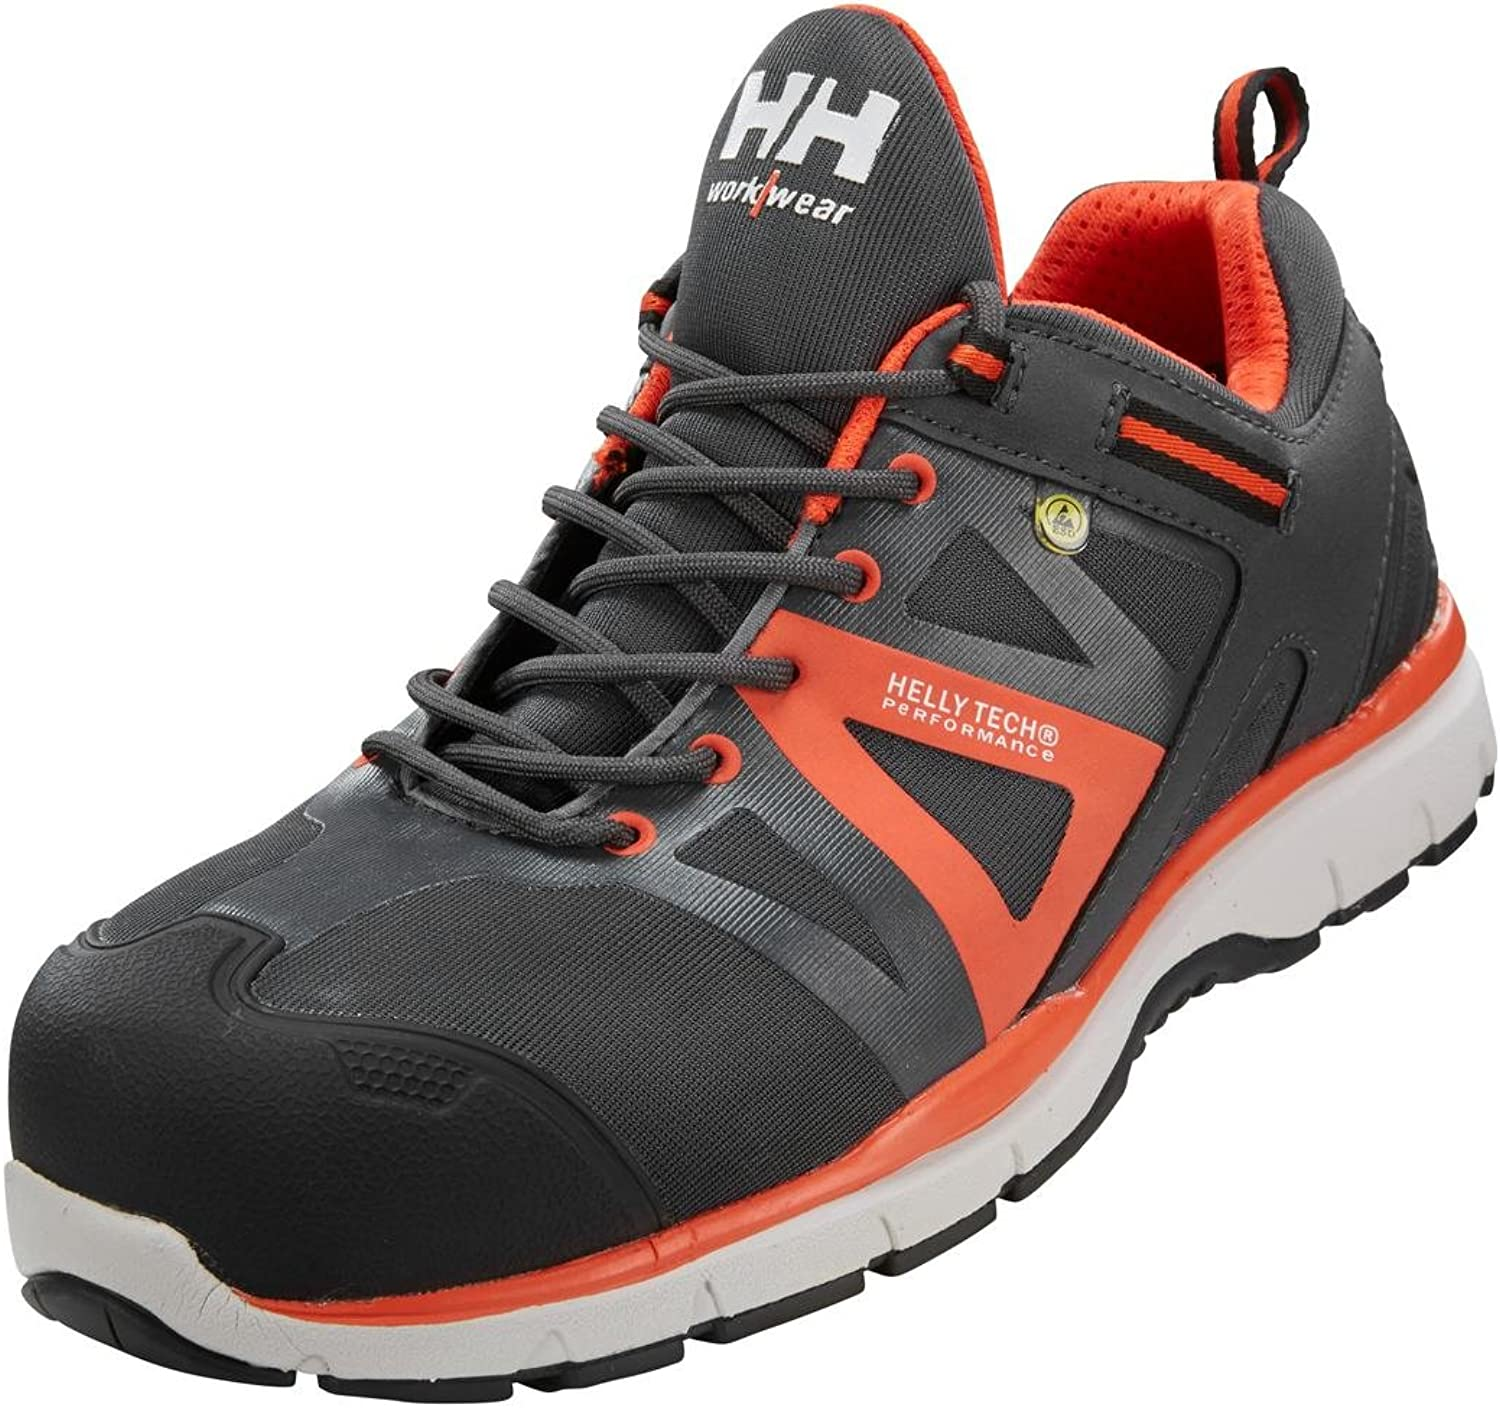 Helly Hansen Mens & Womens Ladies Smestad S3 Workwear Safety shoes